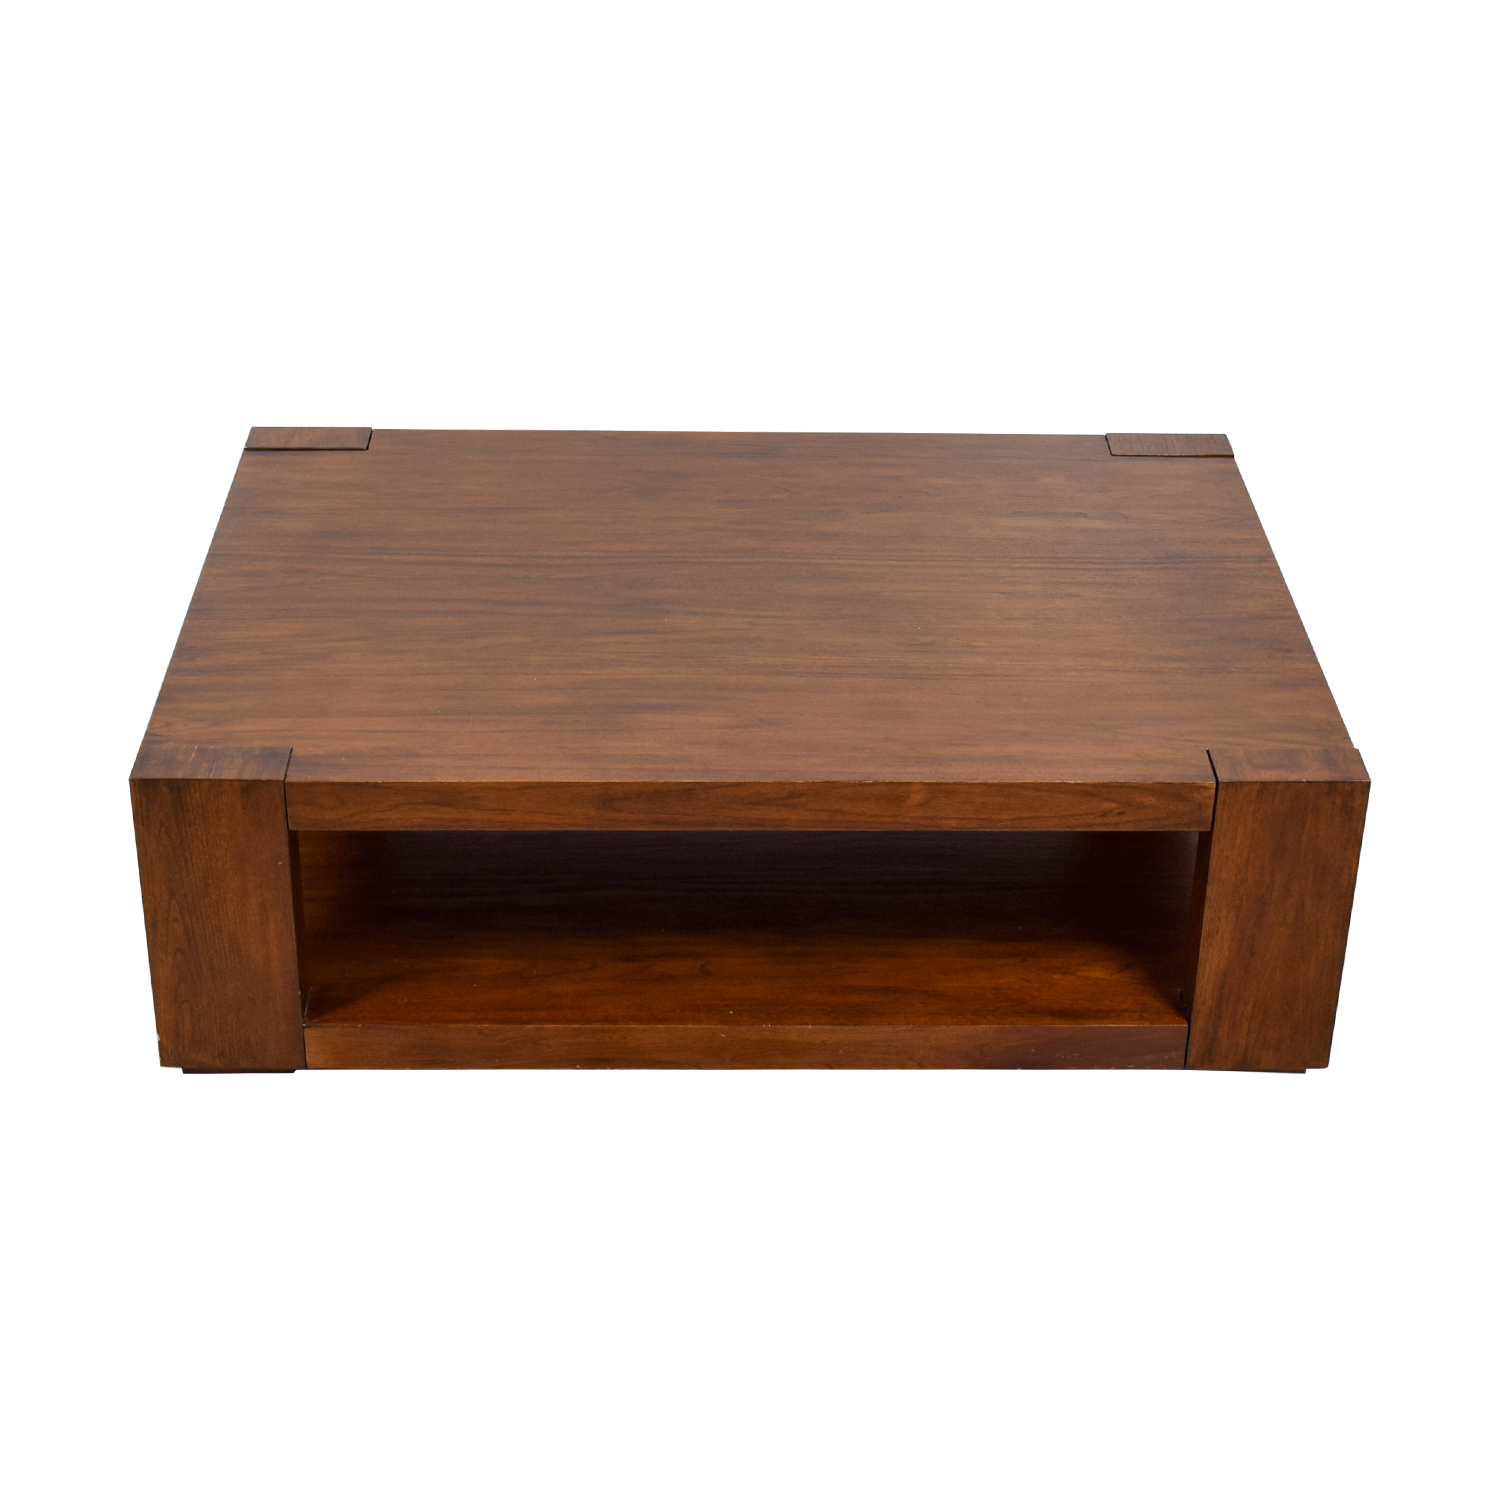 Crate & Barrel Crate & Barrel Lodge Coffee Table used